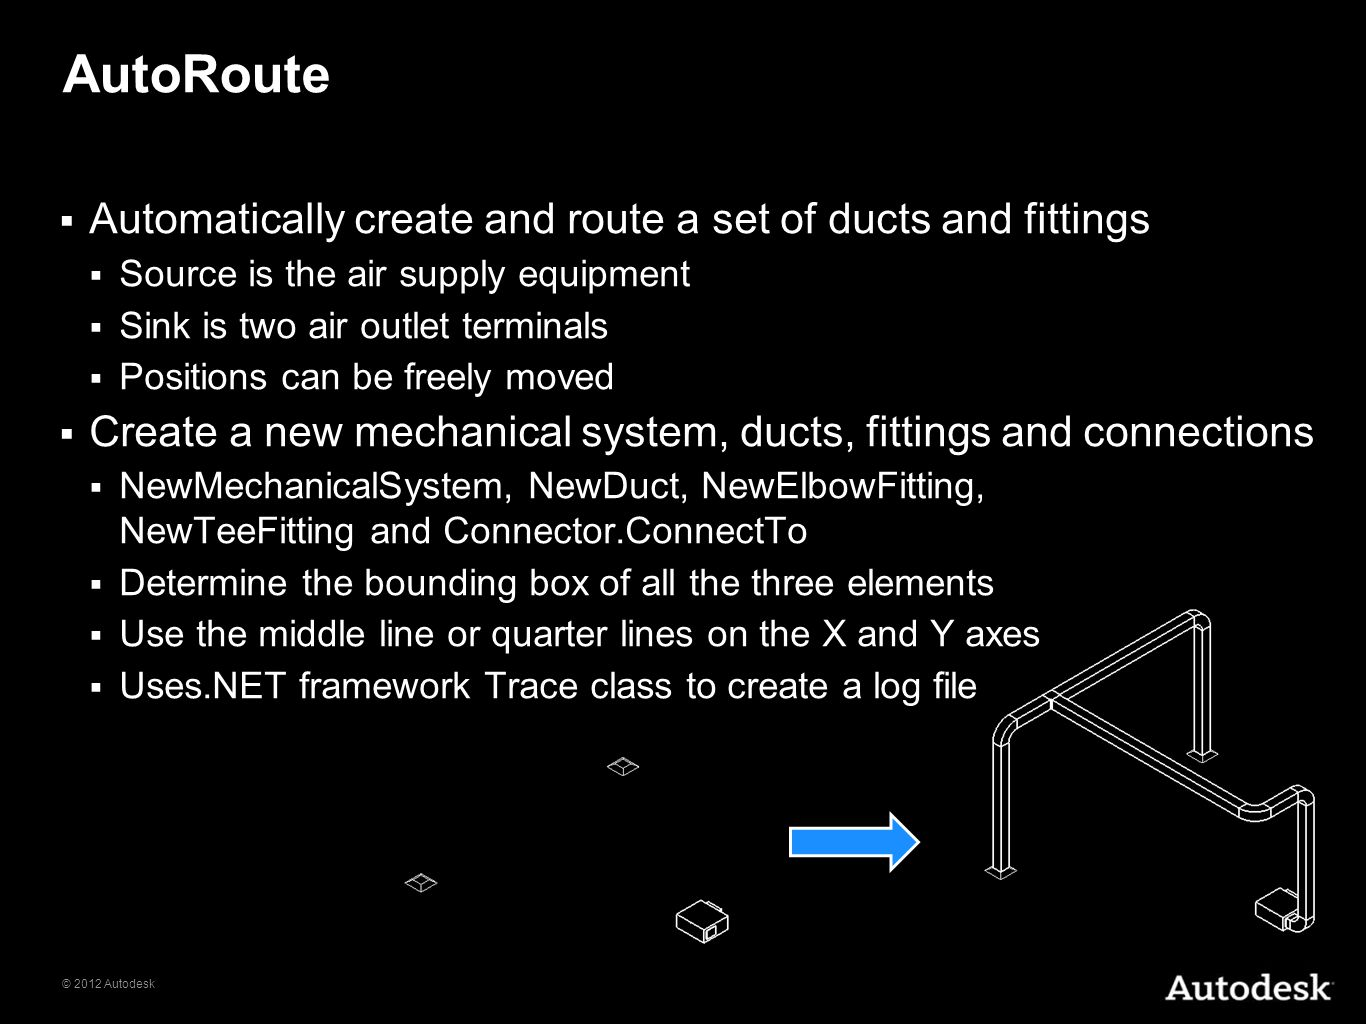 © 2012 Autodesk AutoRoute Automatically create and route a set of ducts and fittings Source is the air supply equipment Sink is two air outlet termina